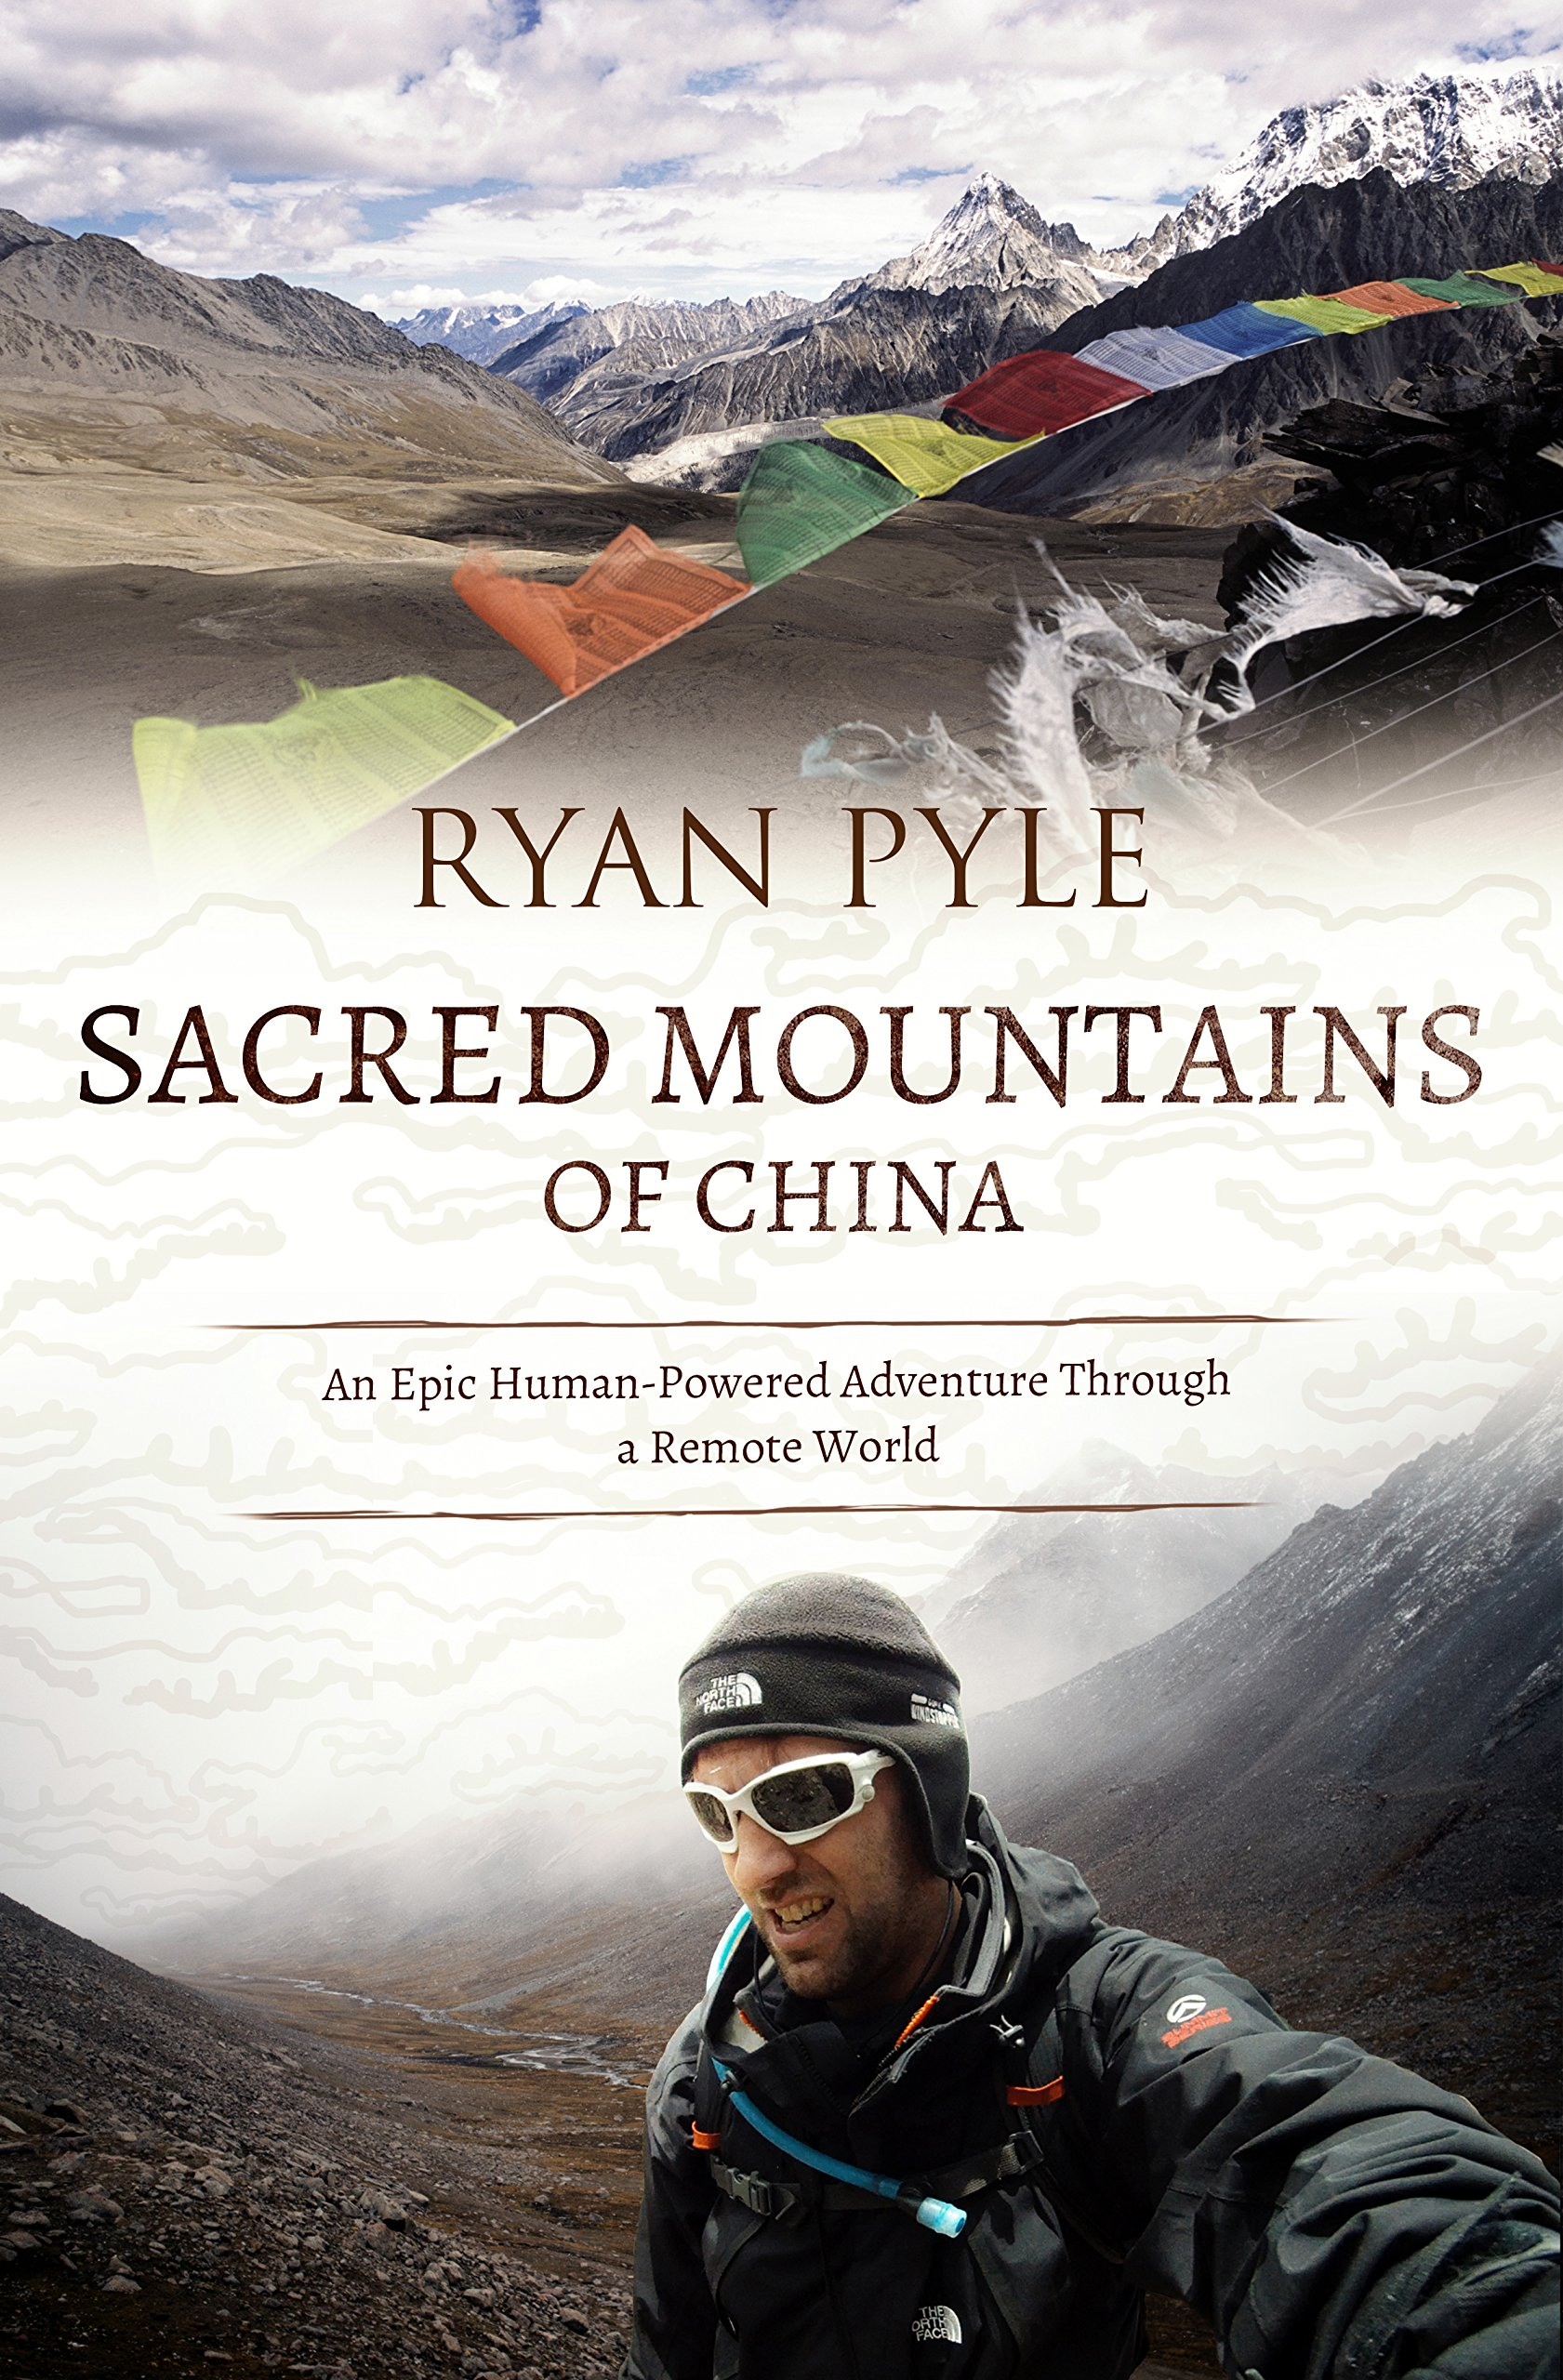 Sacred Mountains of China: An Epic Human-Powered Adventure Through a Remote World